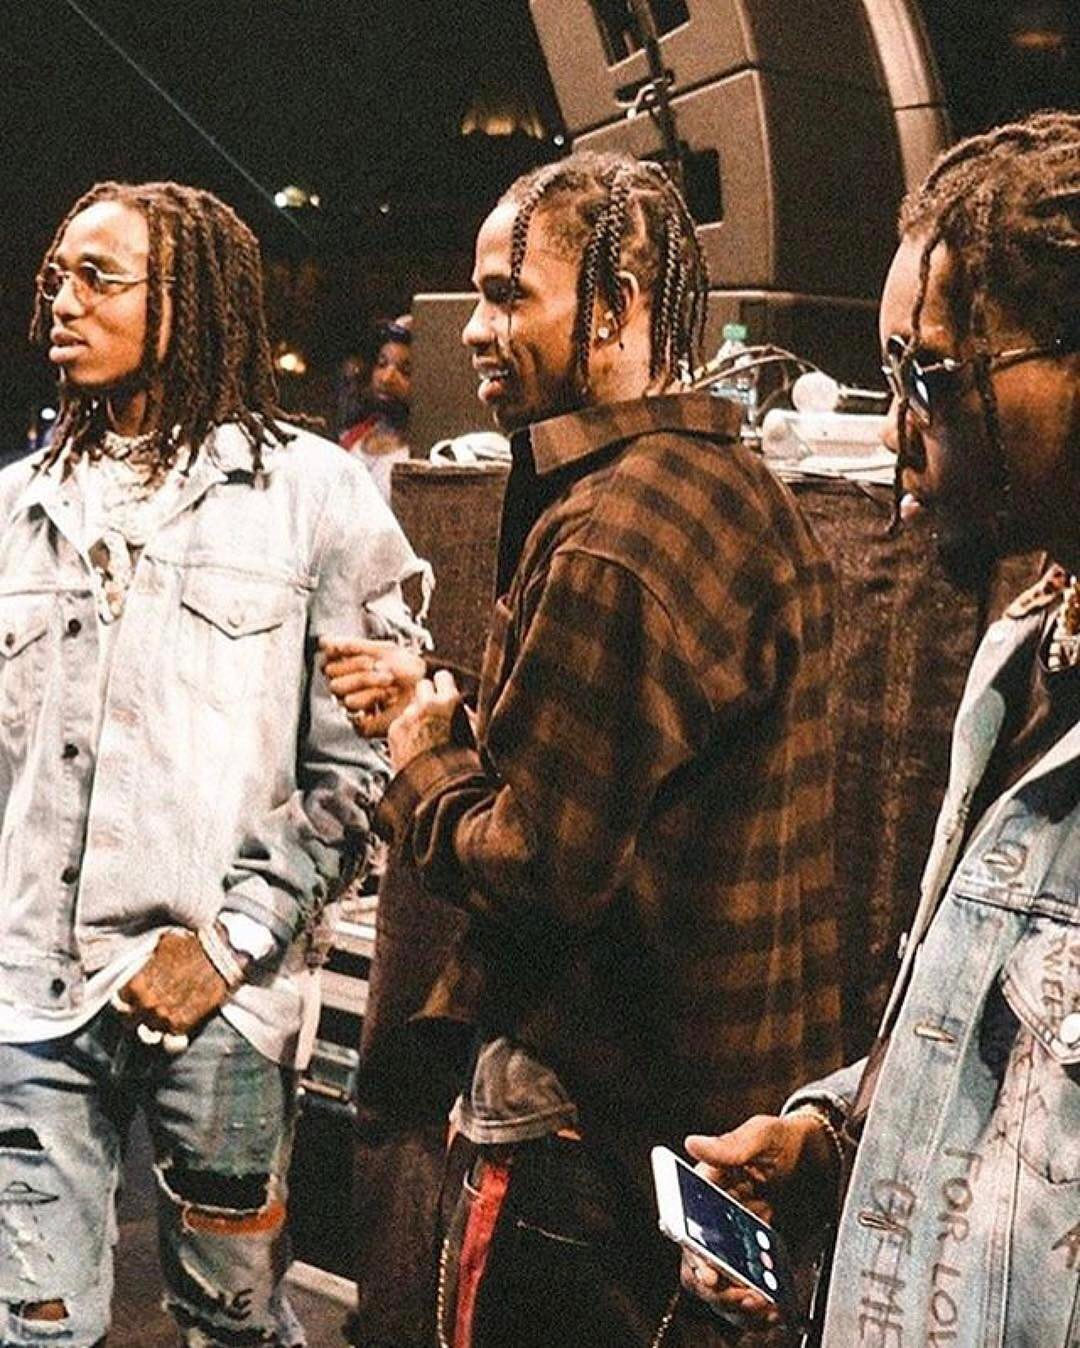 SPOTTED: Travis Scott, Quavo And Offset In Balenciaga And Gucci